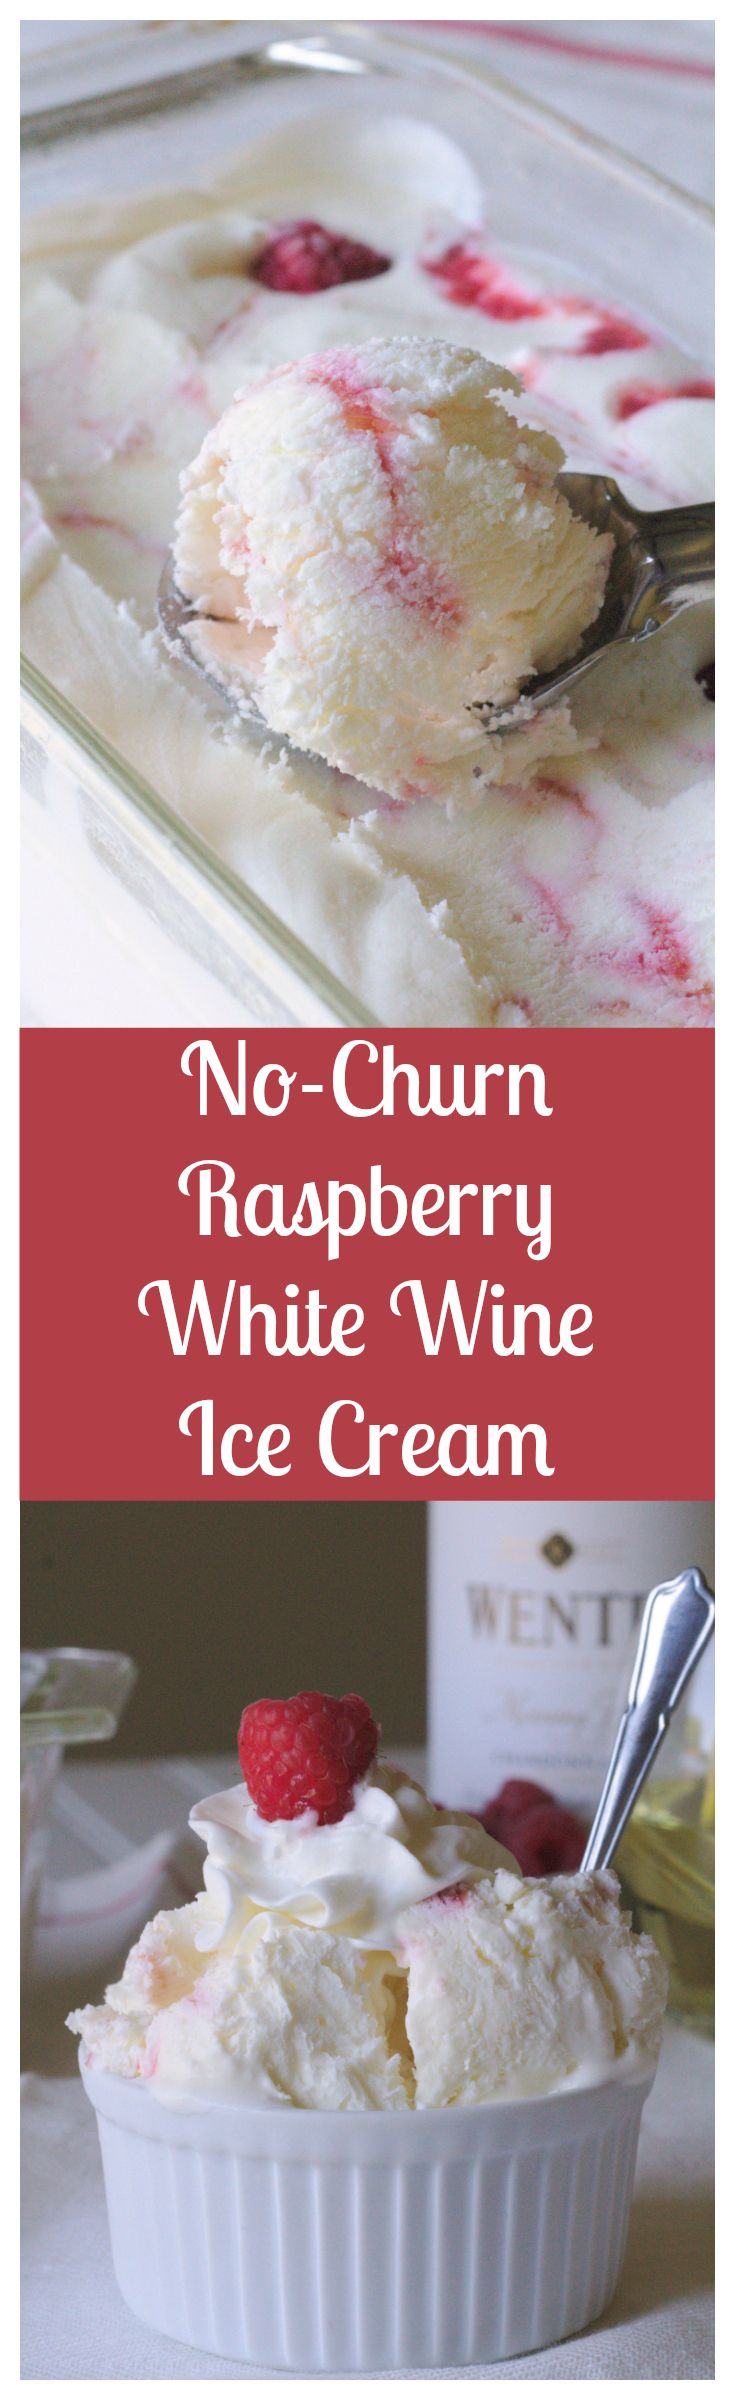 No-Churn Raspberry White Wine Ice Cream – A simple, no-churn ice cream base infused with @wente white wine and swirled with a fresh raspberry ripple.